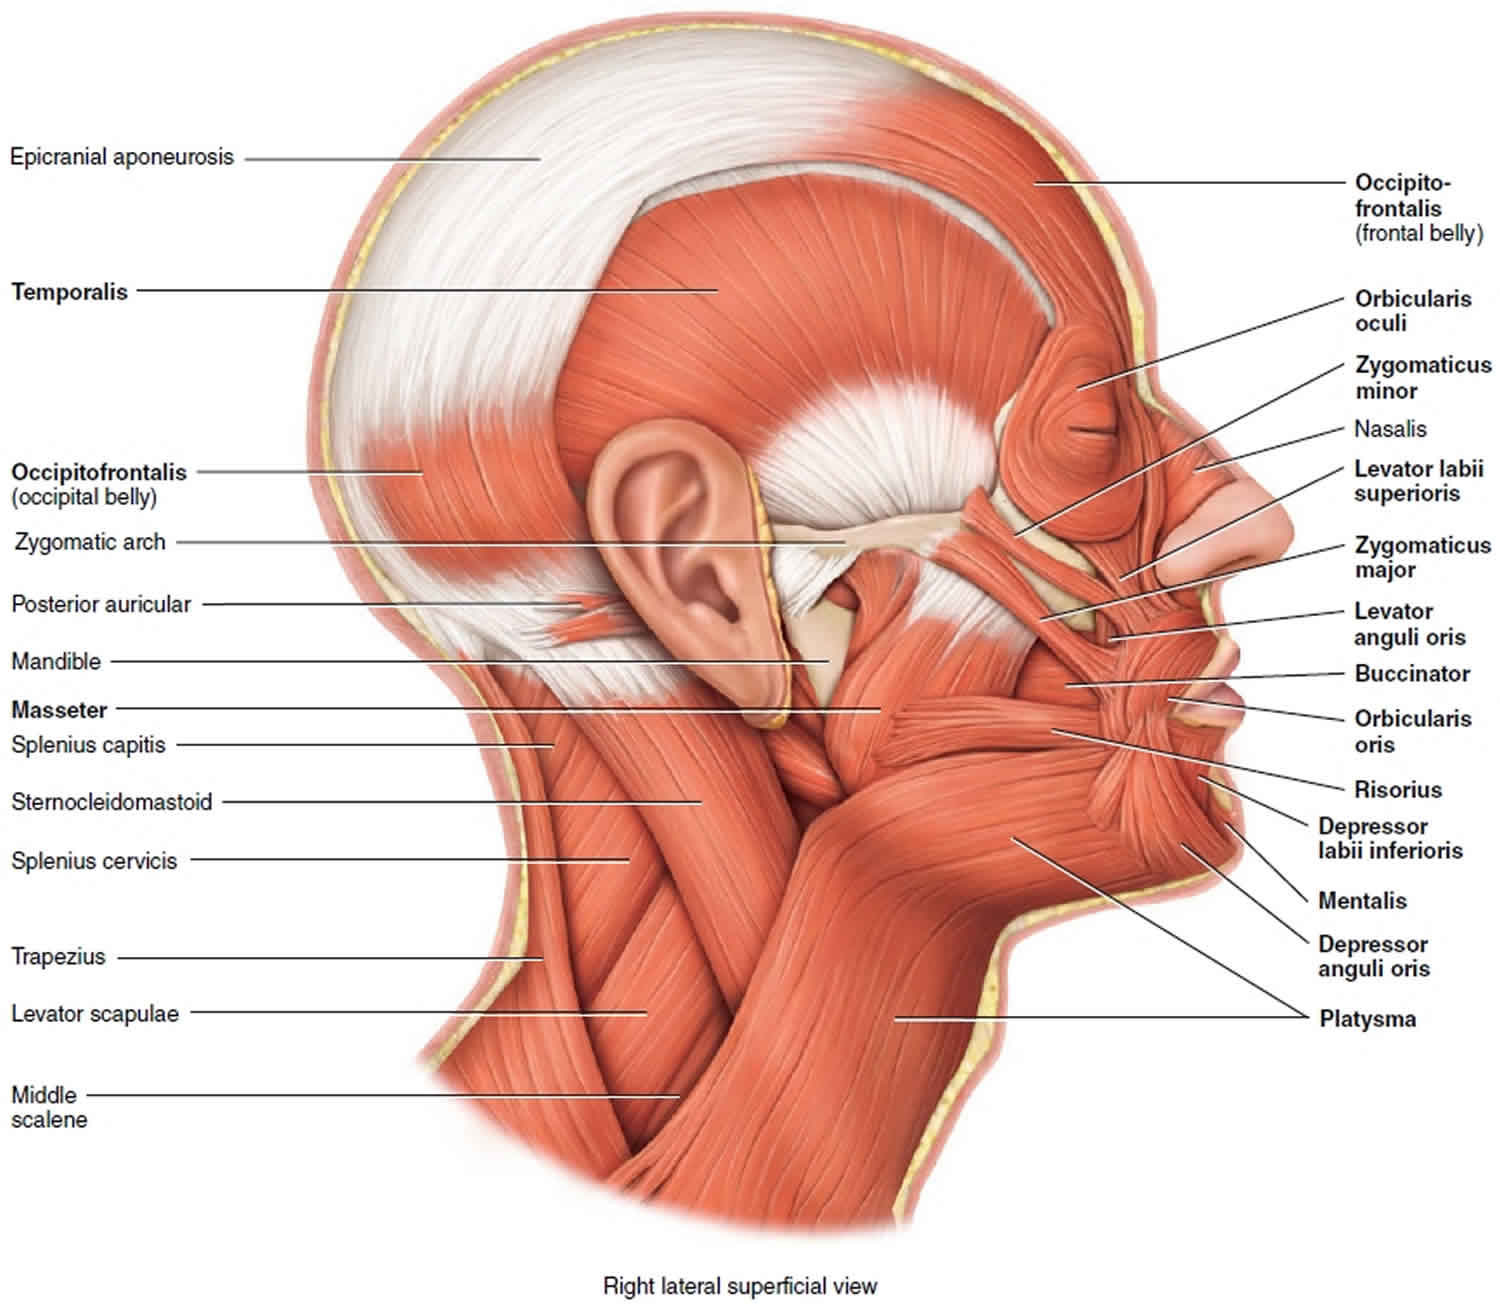 Muscles that move the mandible